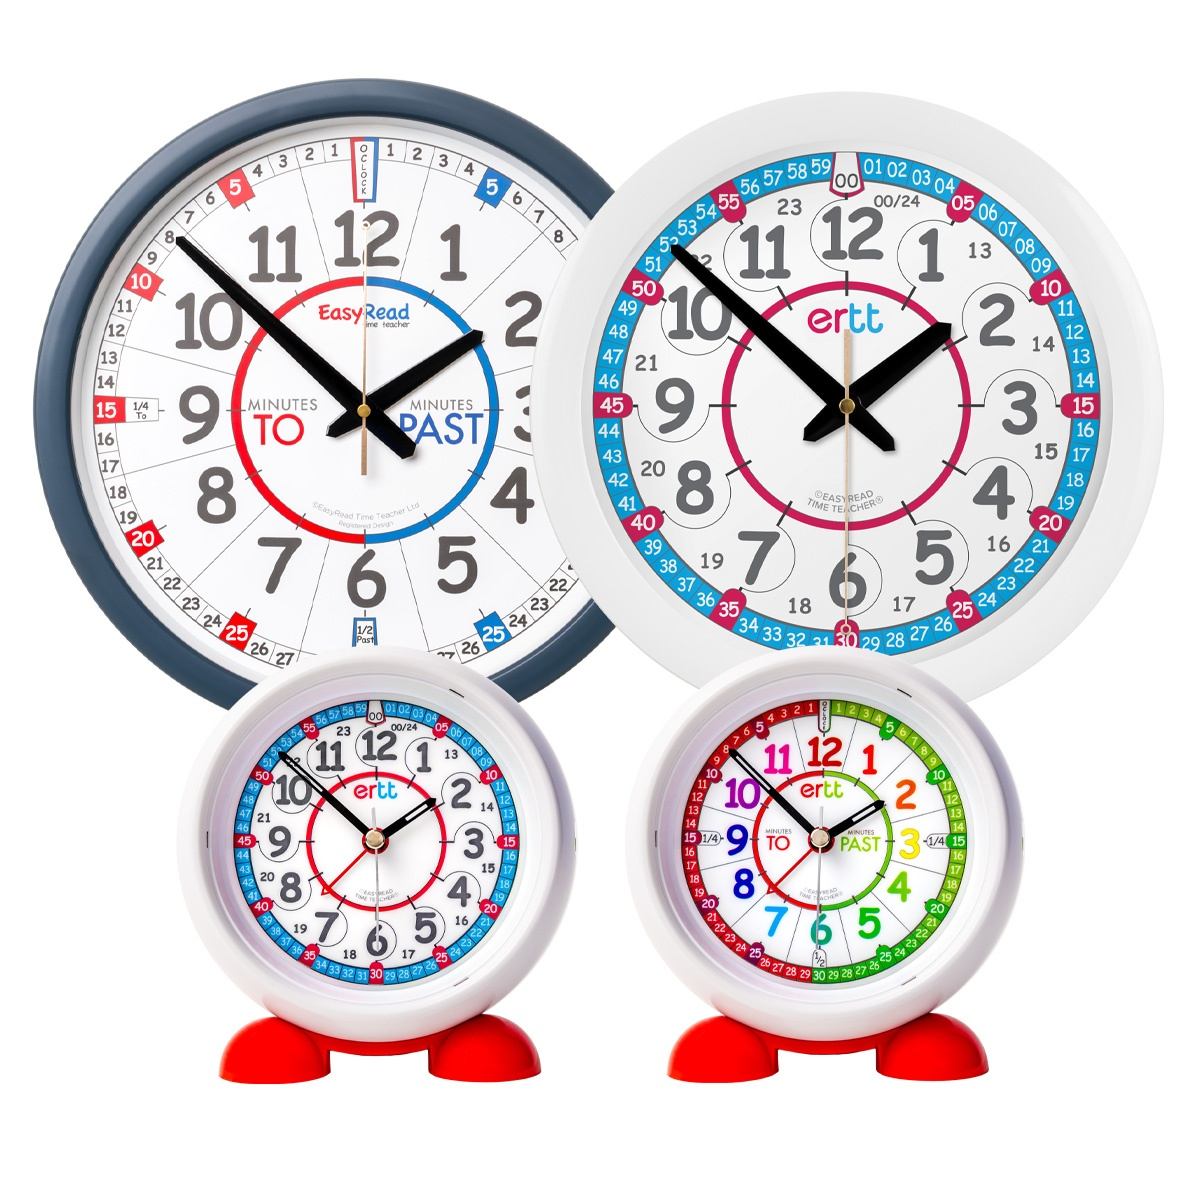 Clock selection